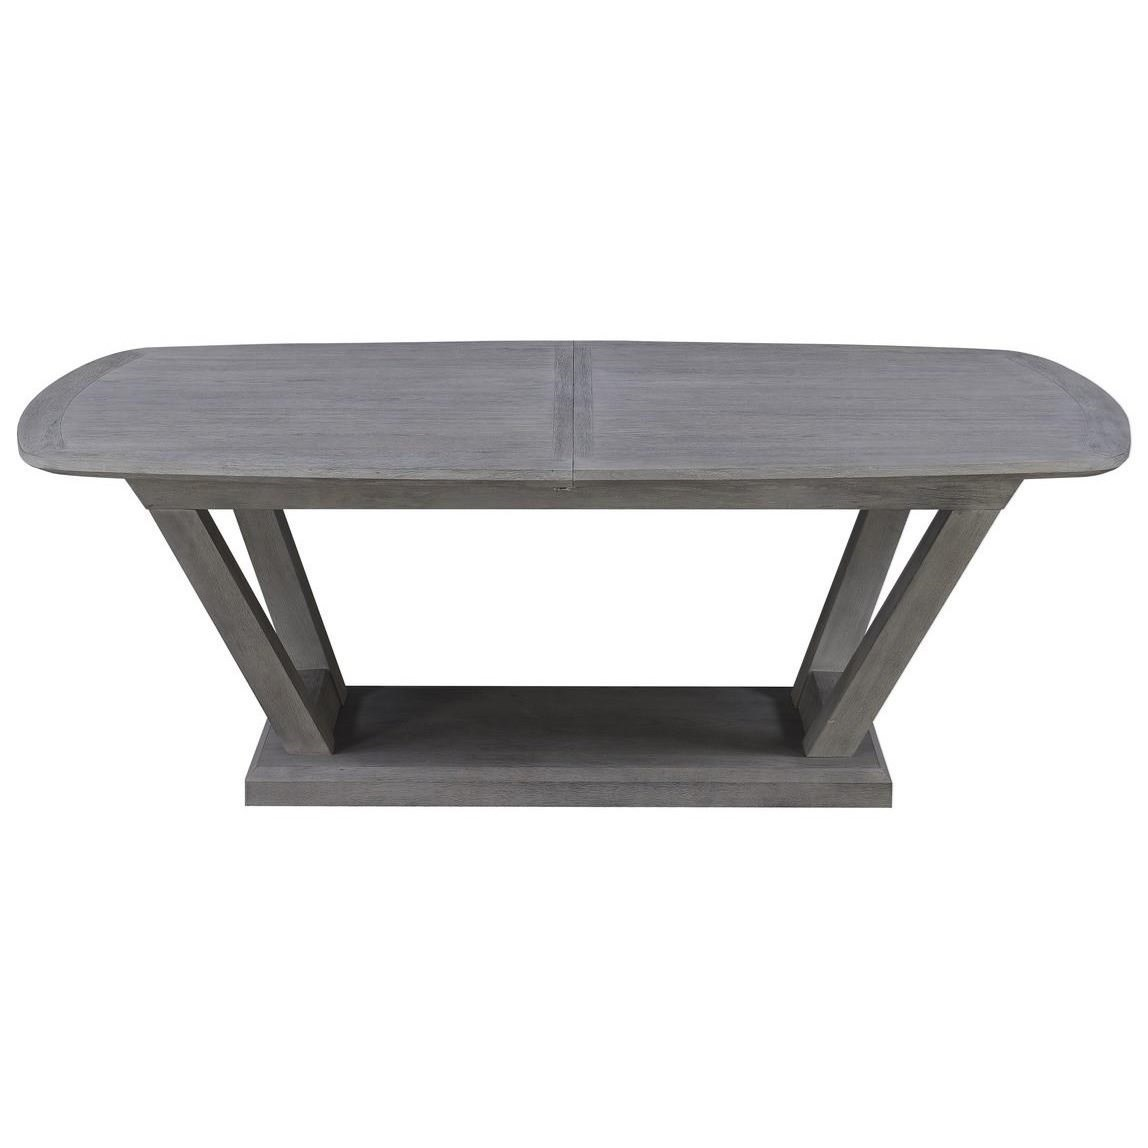 Carrera Dining Table by Emerald at Northeast Factory Direct